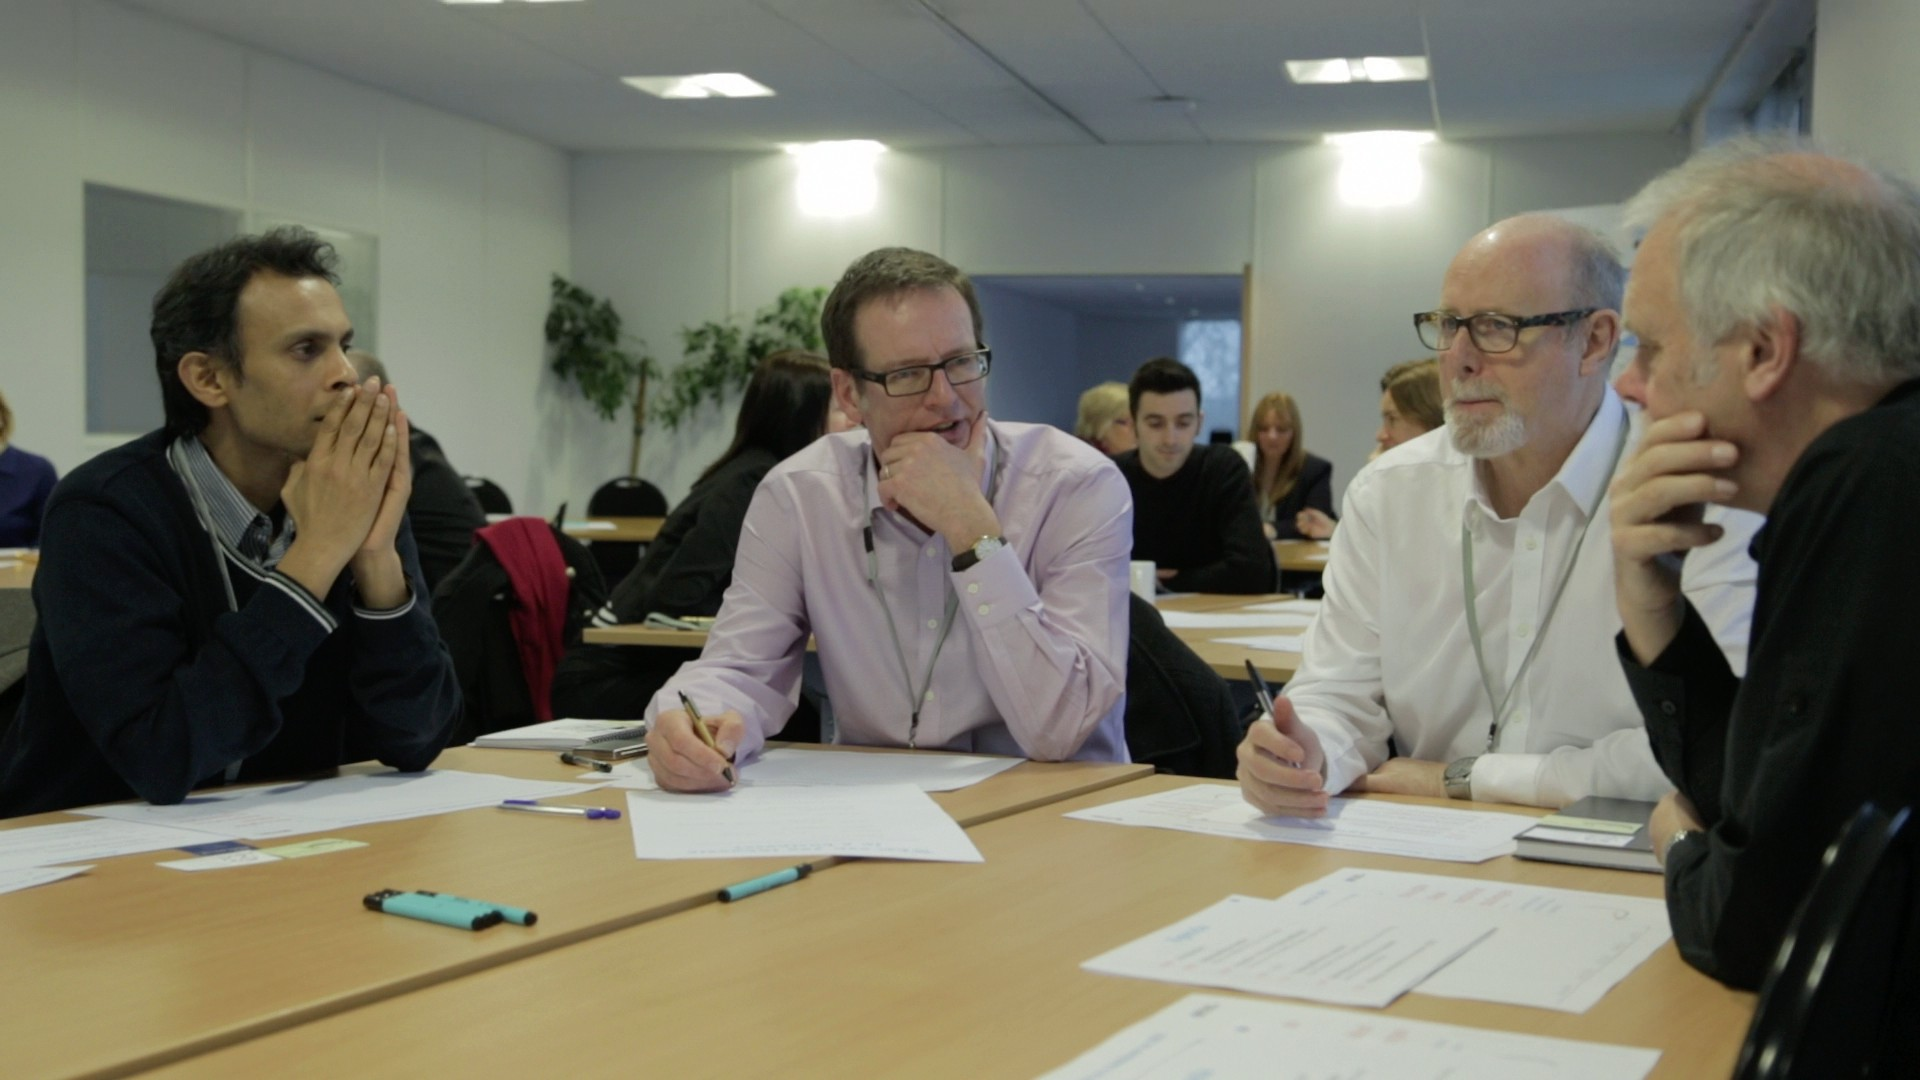 Participants explore how to become more innovative during the Chamber's January Masterclass run by strategic innovation consultancy Stocker Partnership